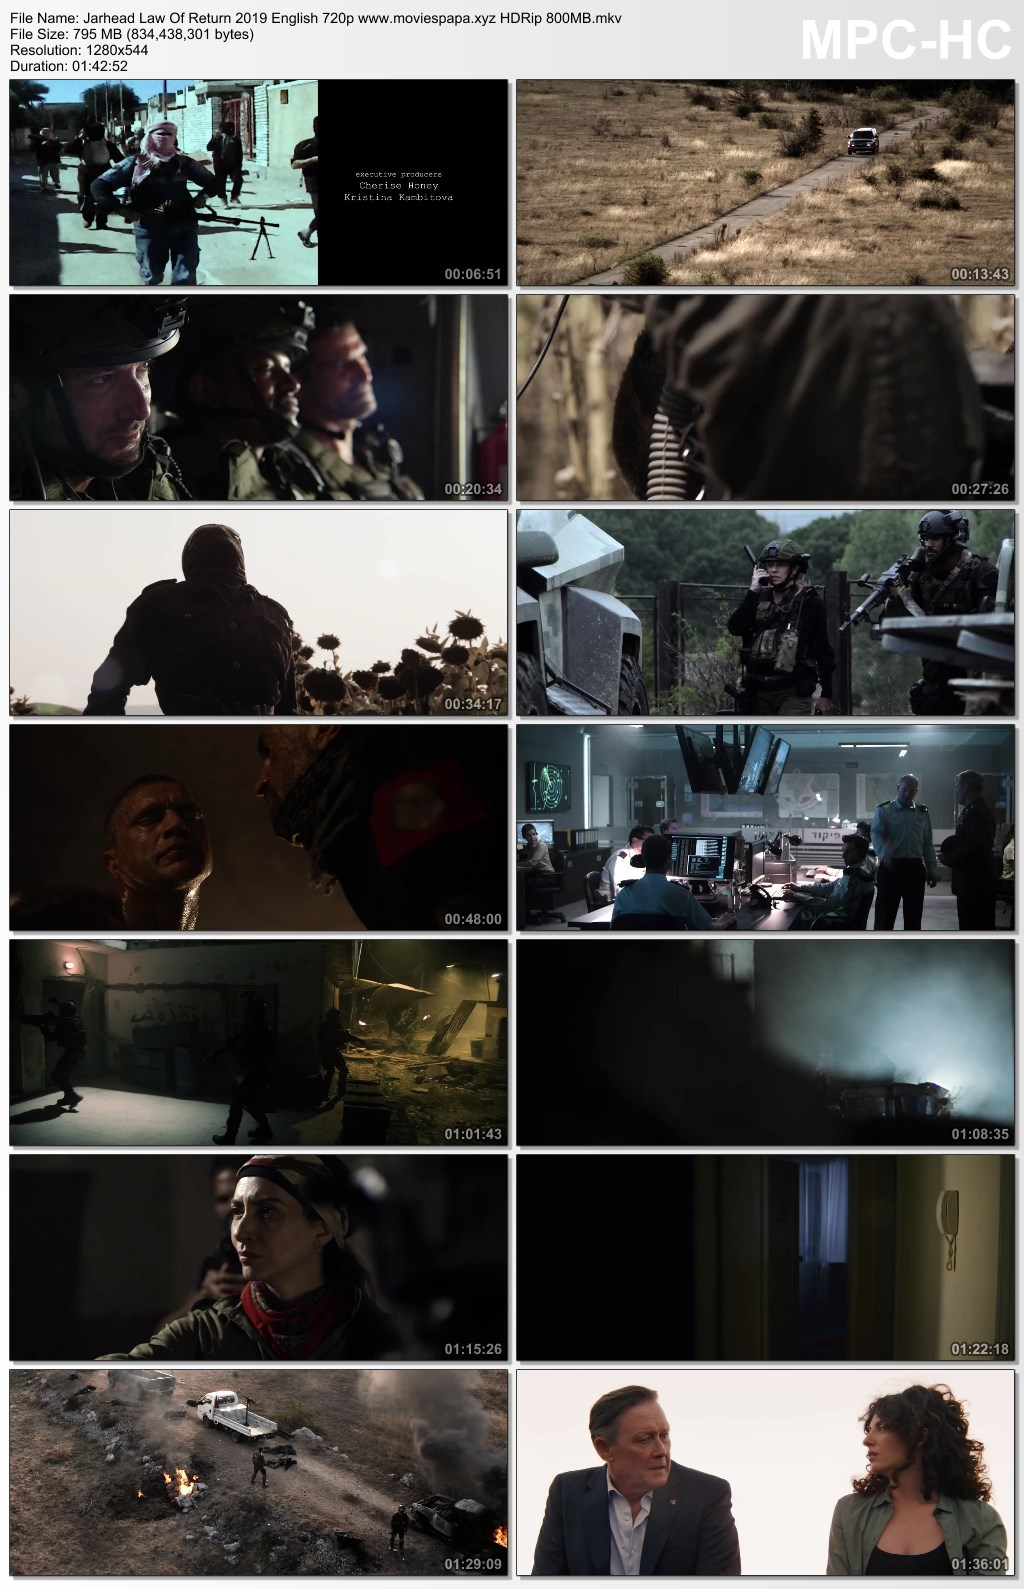 Download Film Jarhead Law Of Return 2019